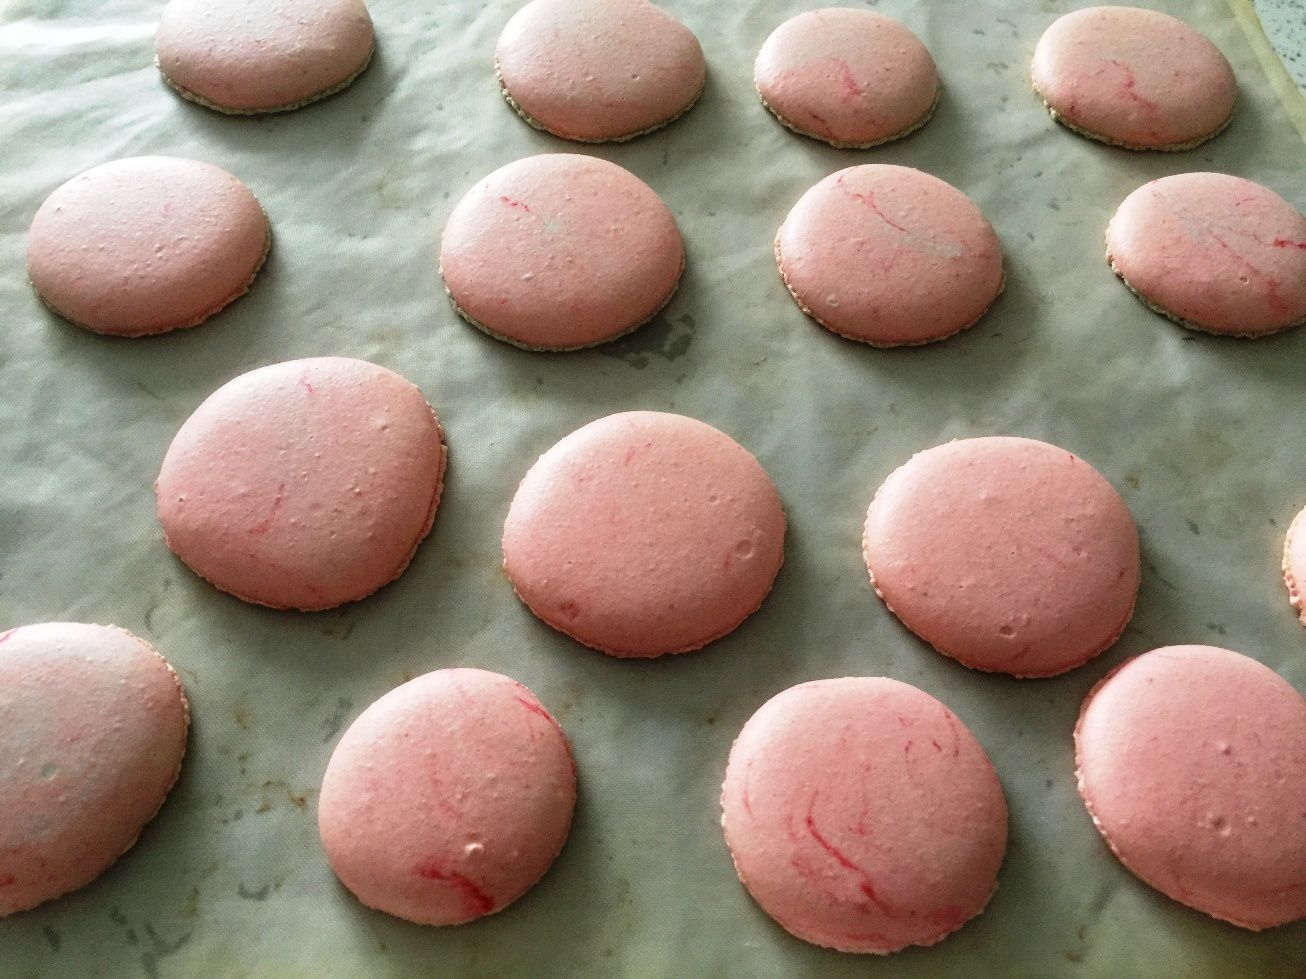 un mix de colorant bleu et rouge donne un rsultat - Colorant Macaron